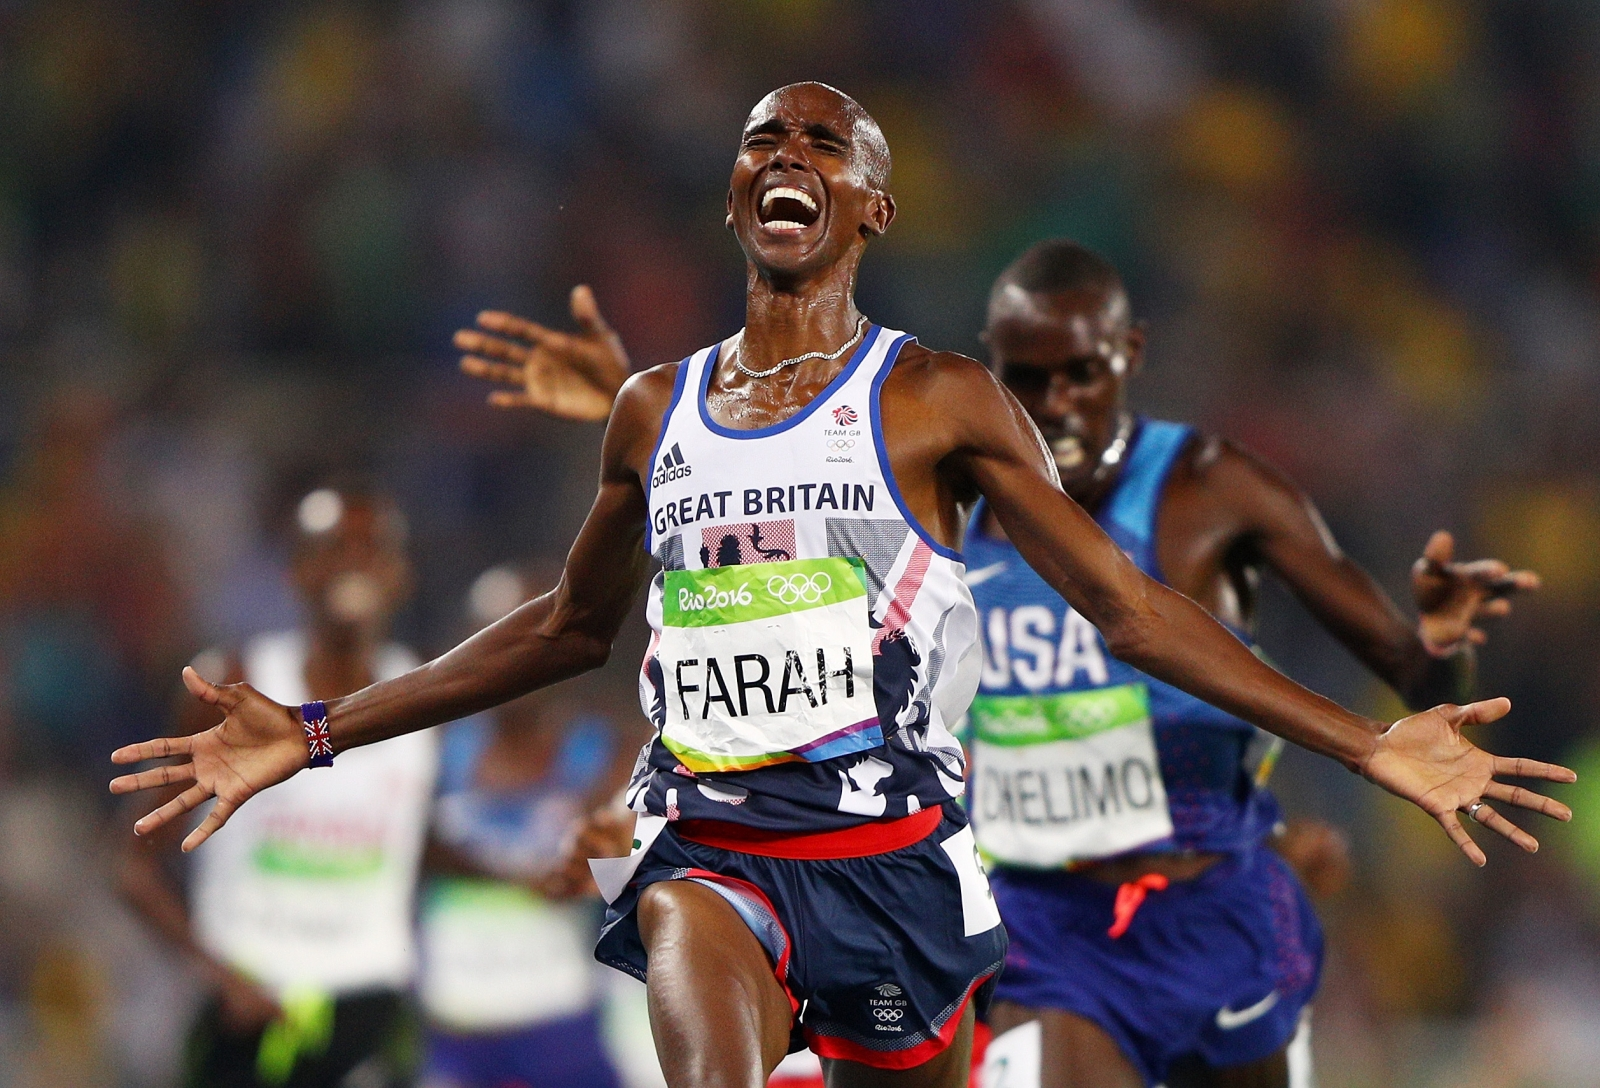 Rio 2016 Olympics: Mo Farah retains 5,000m gold to secure historic 'double double'